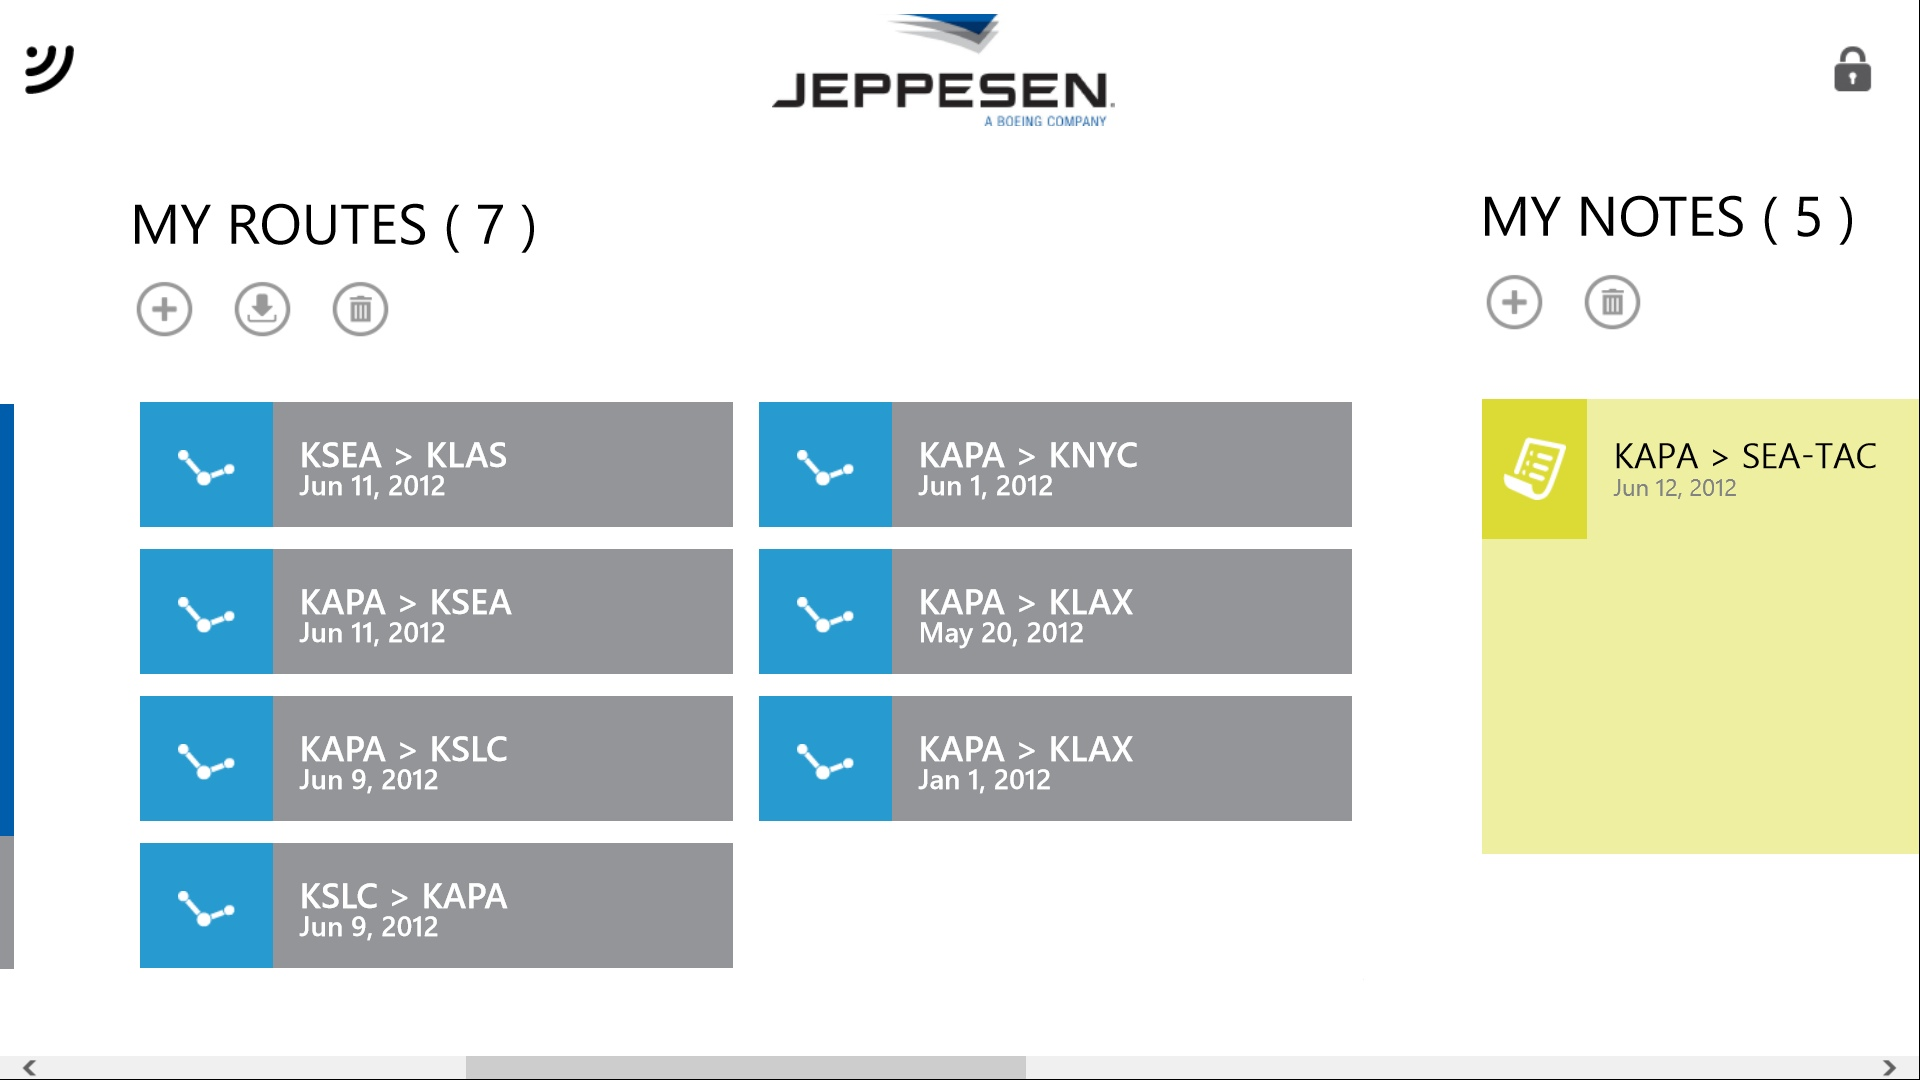 Jeppesen Flite Deck Pro Windows 7 Routes